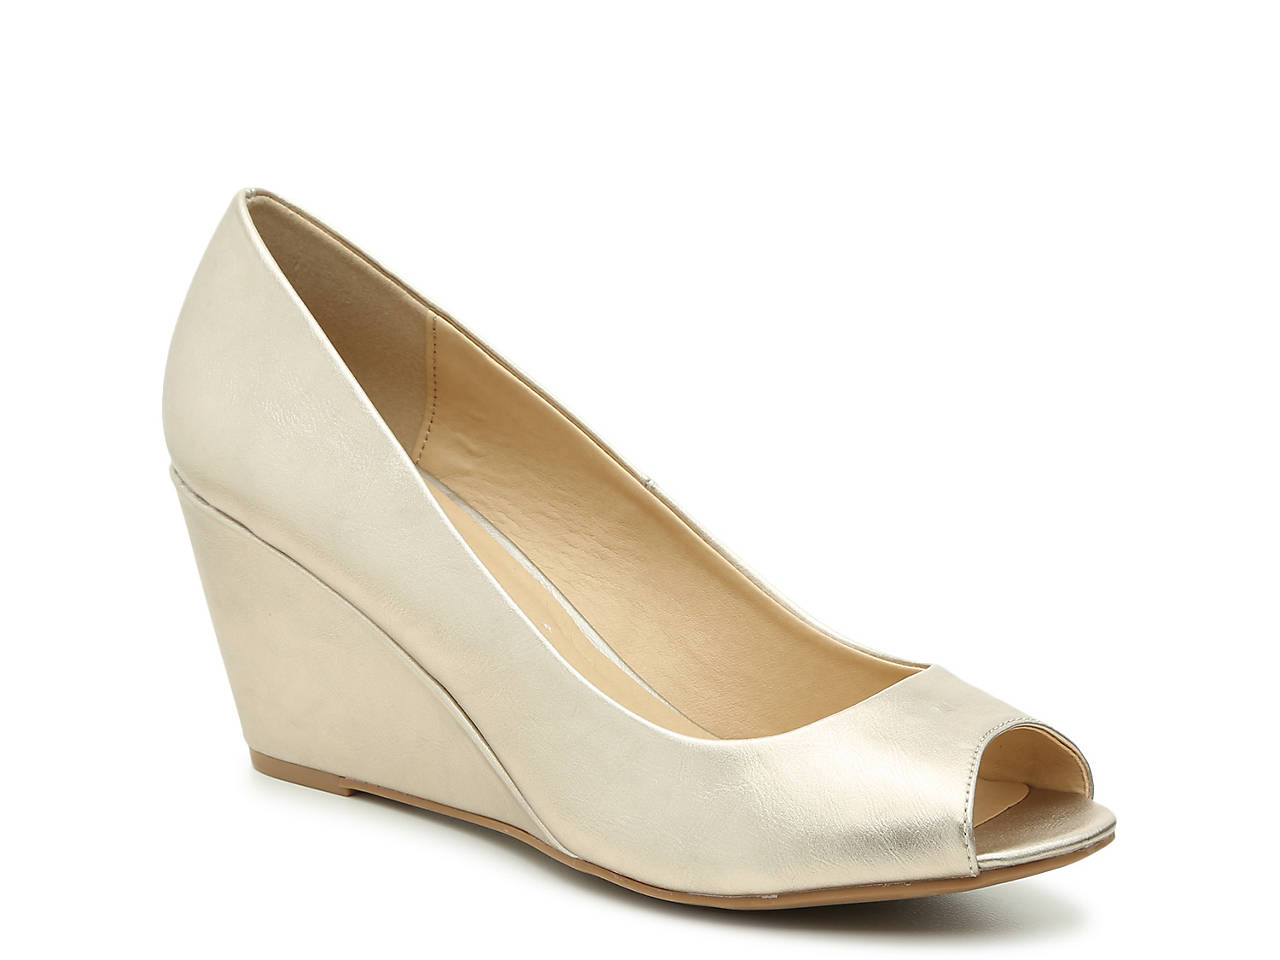 17 Comfortable Wedding Shoes For The Bride forecast